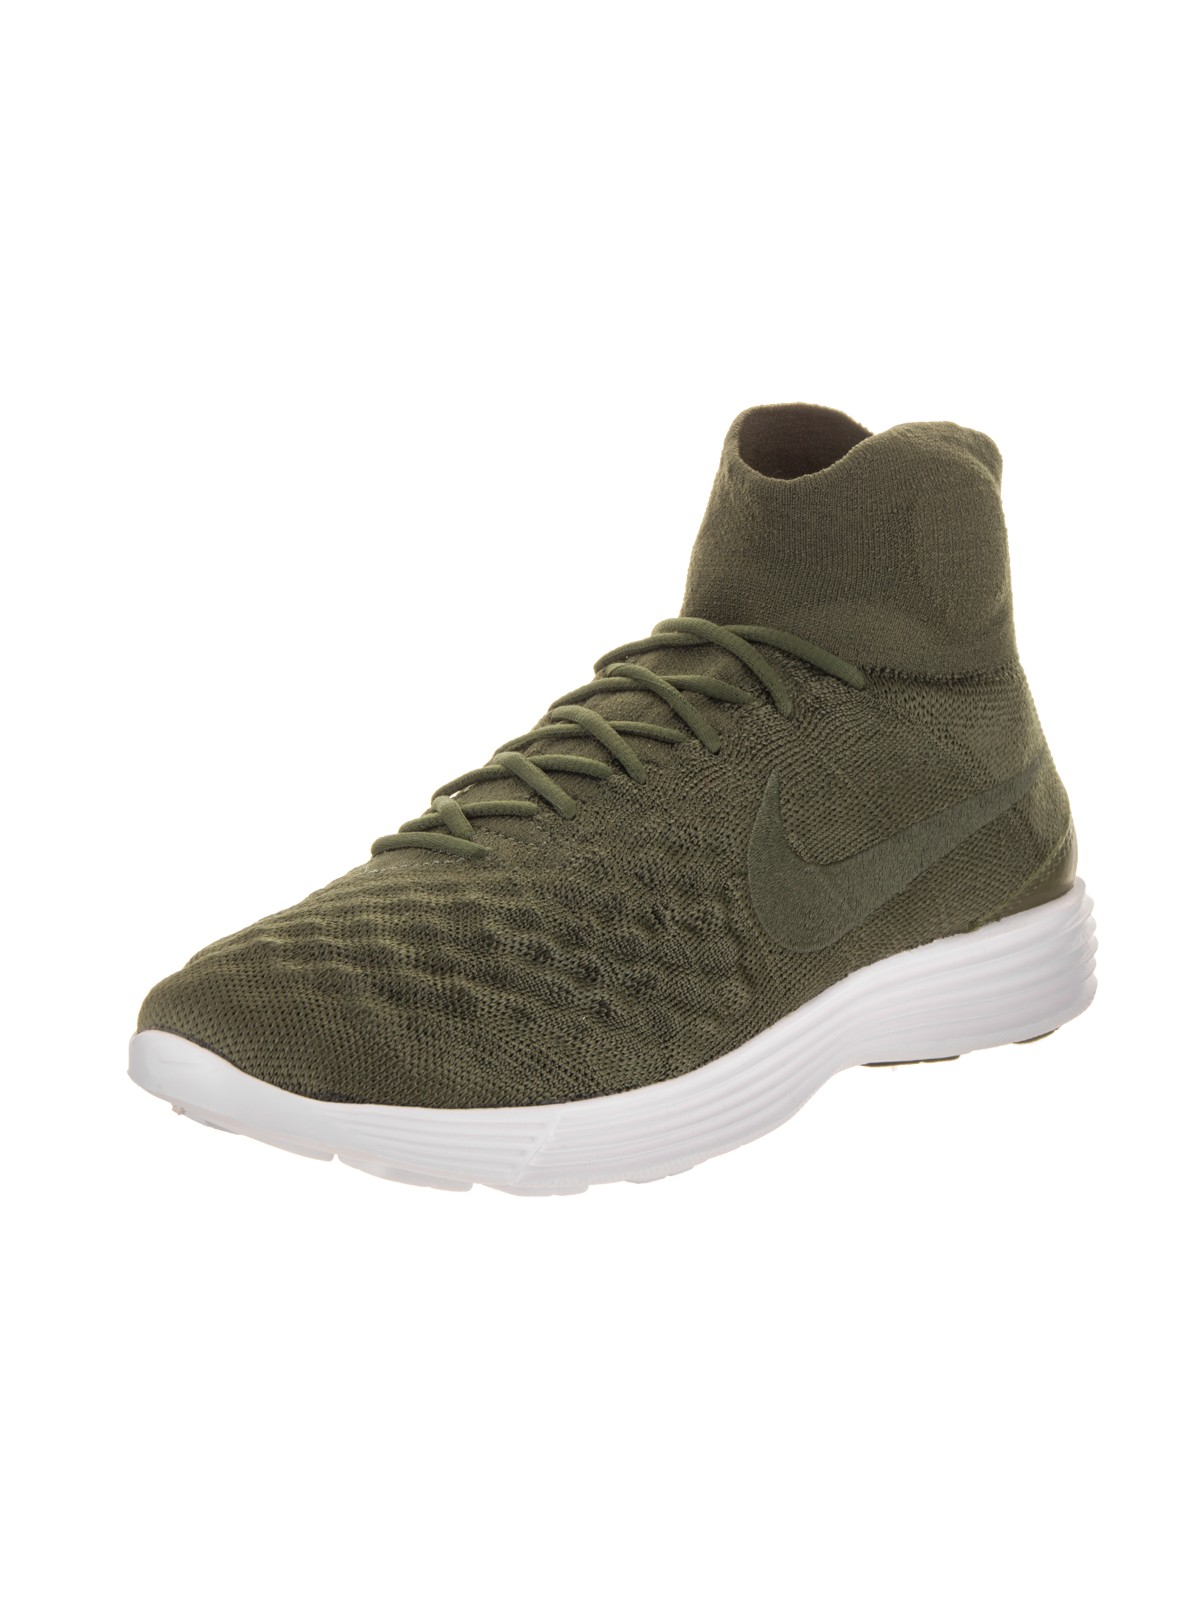 Nike Men's Lunar Magista II FK Training Shoe